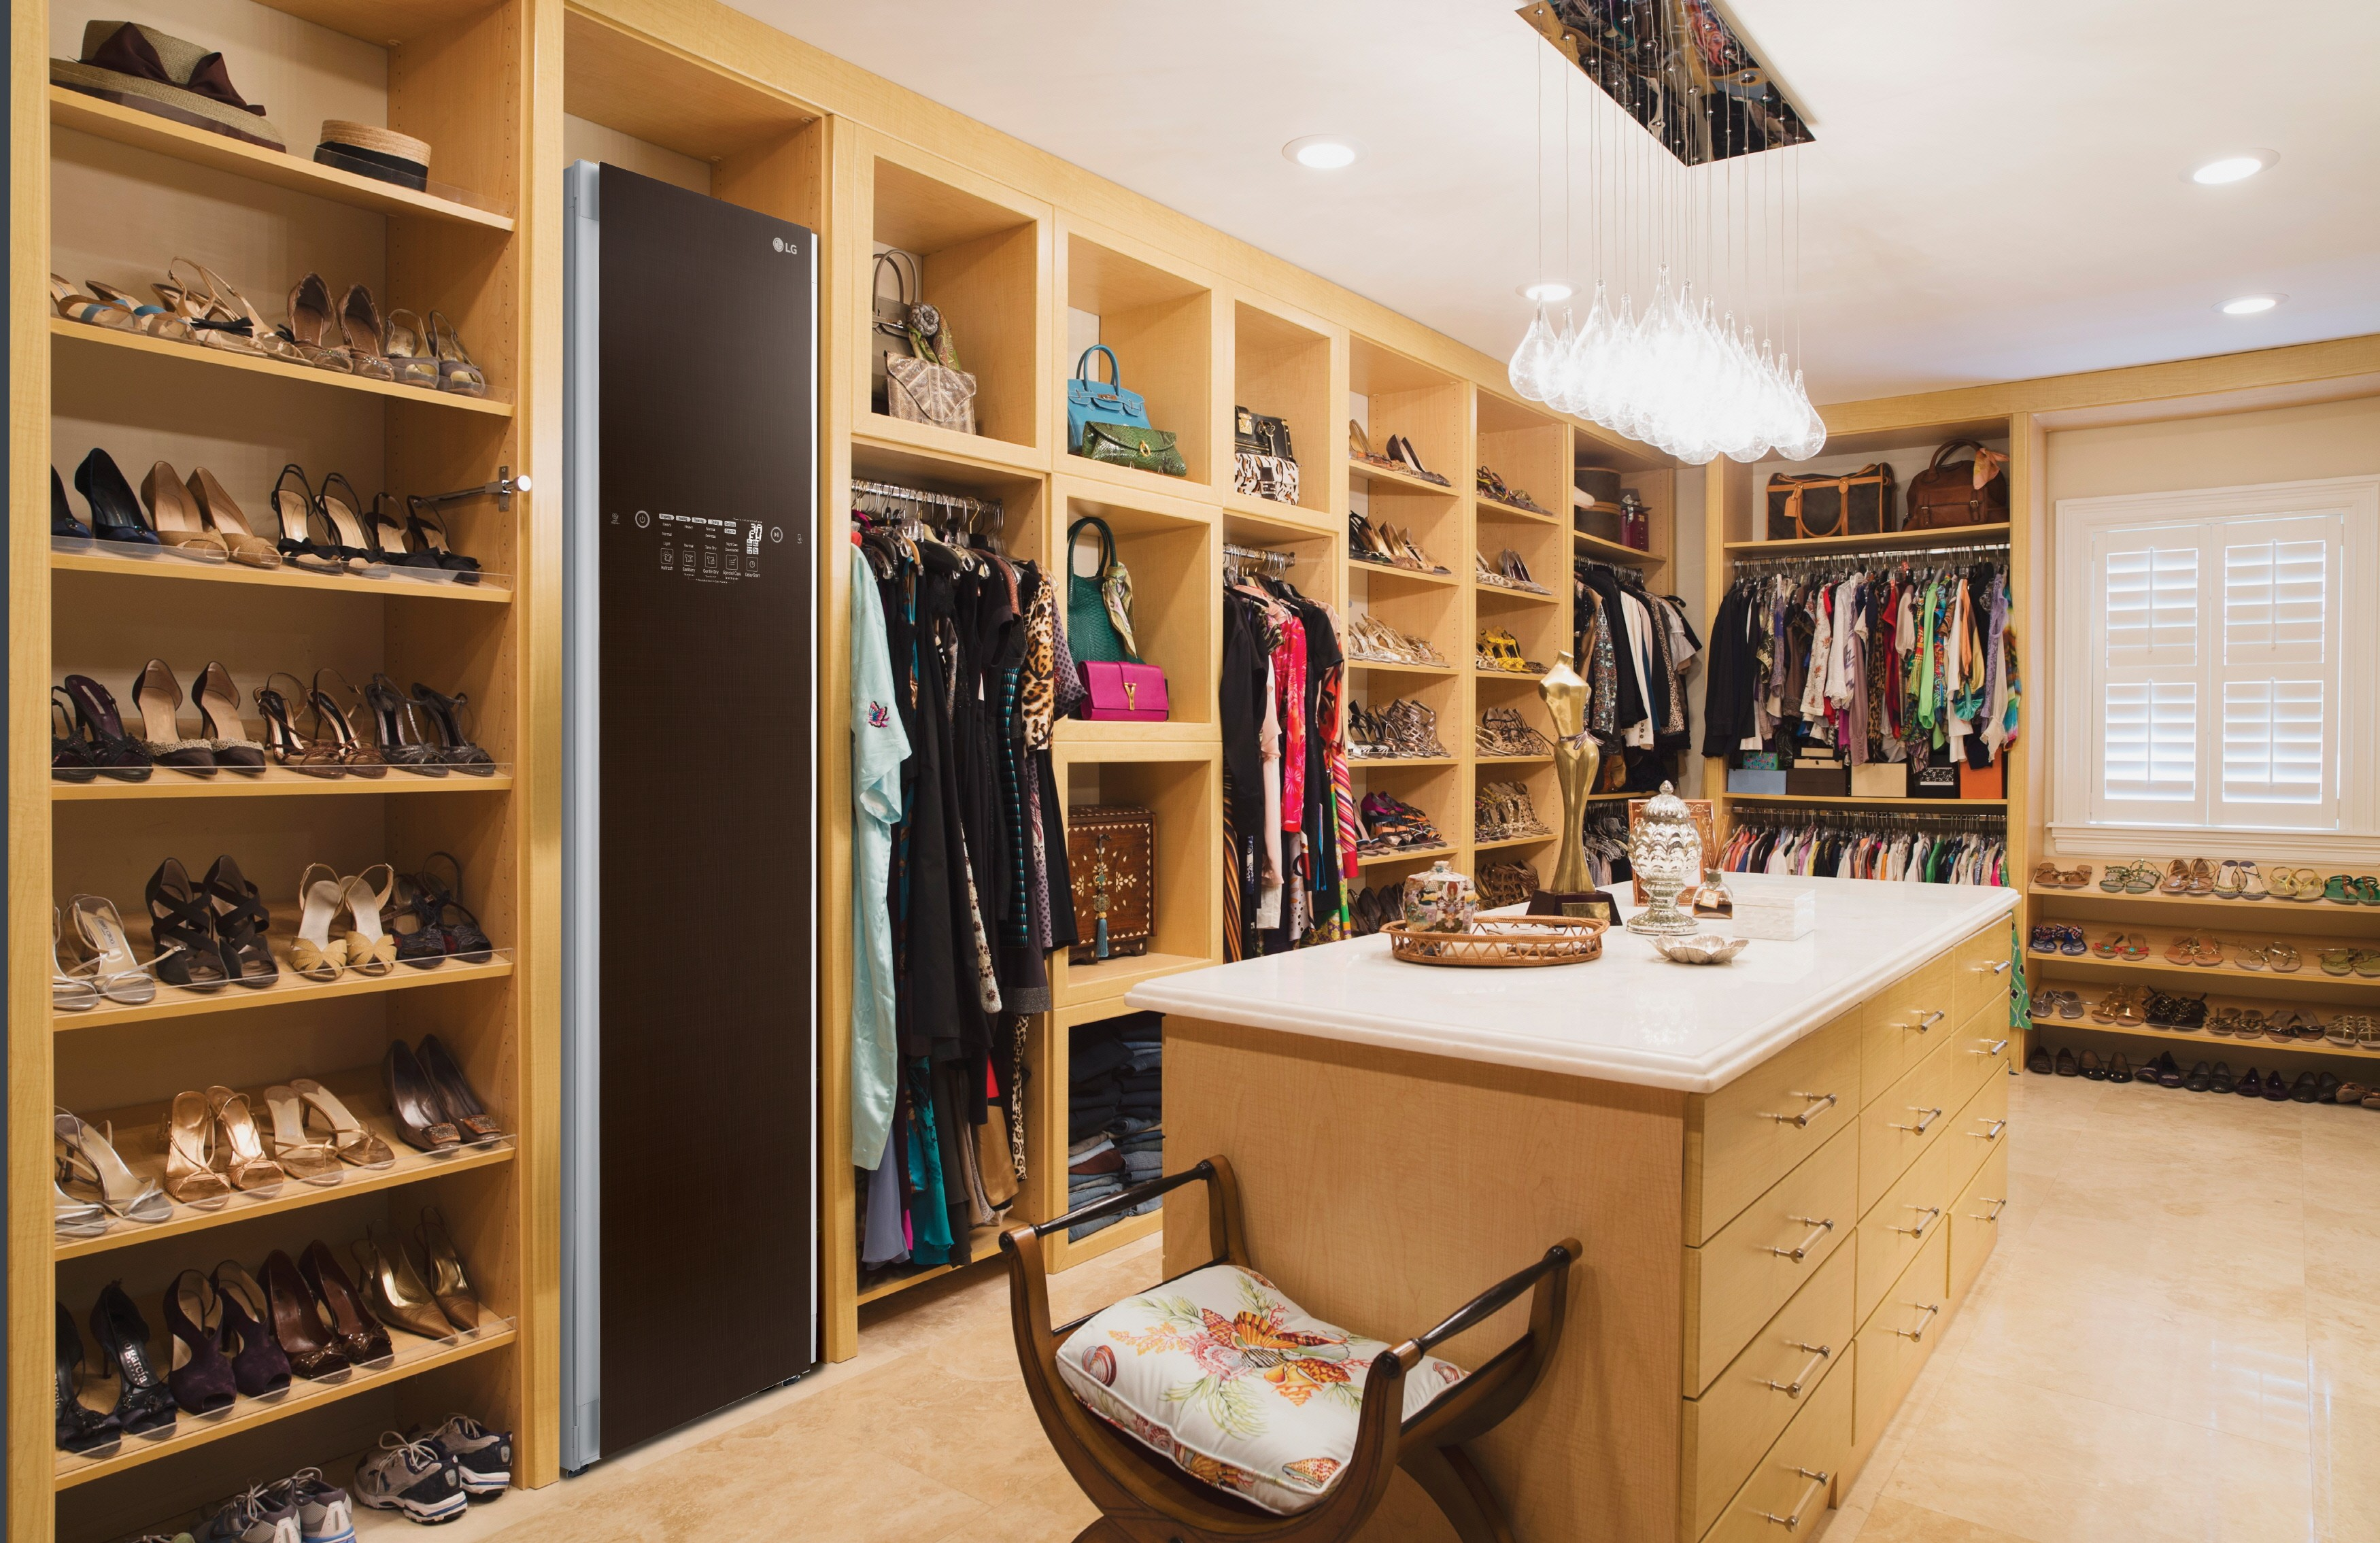 lode spa and shower well dsc contemporary also as steam luxury mechanical features private breckenridge home dream room bath complete in closet garage a penn laundry water entrance with